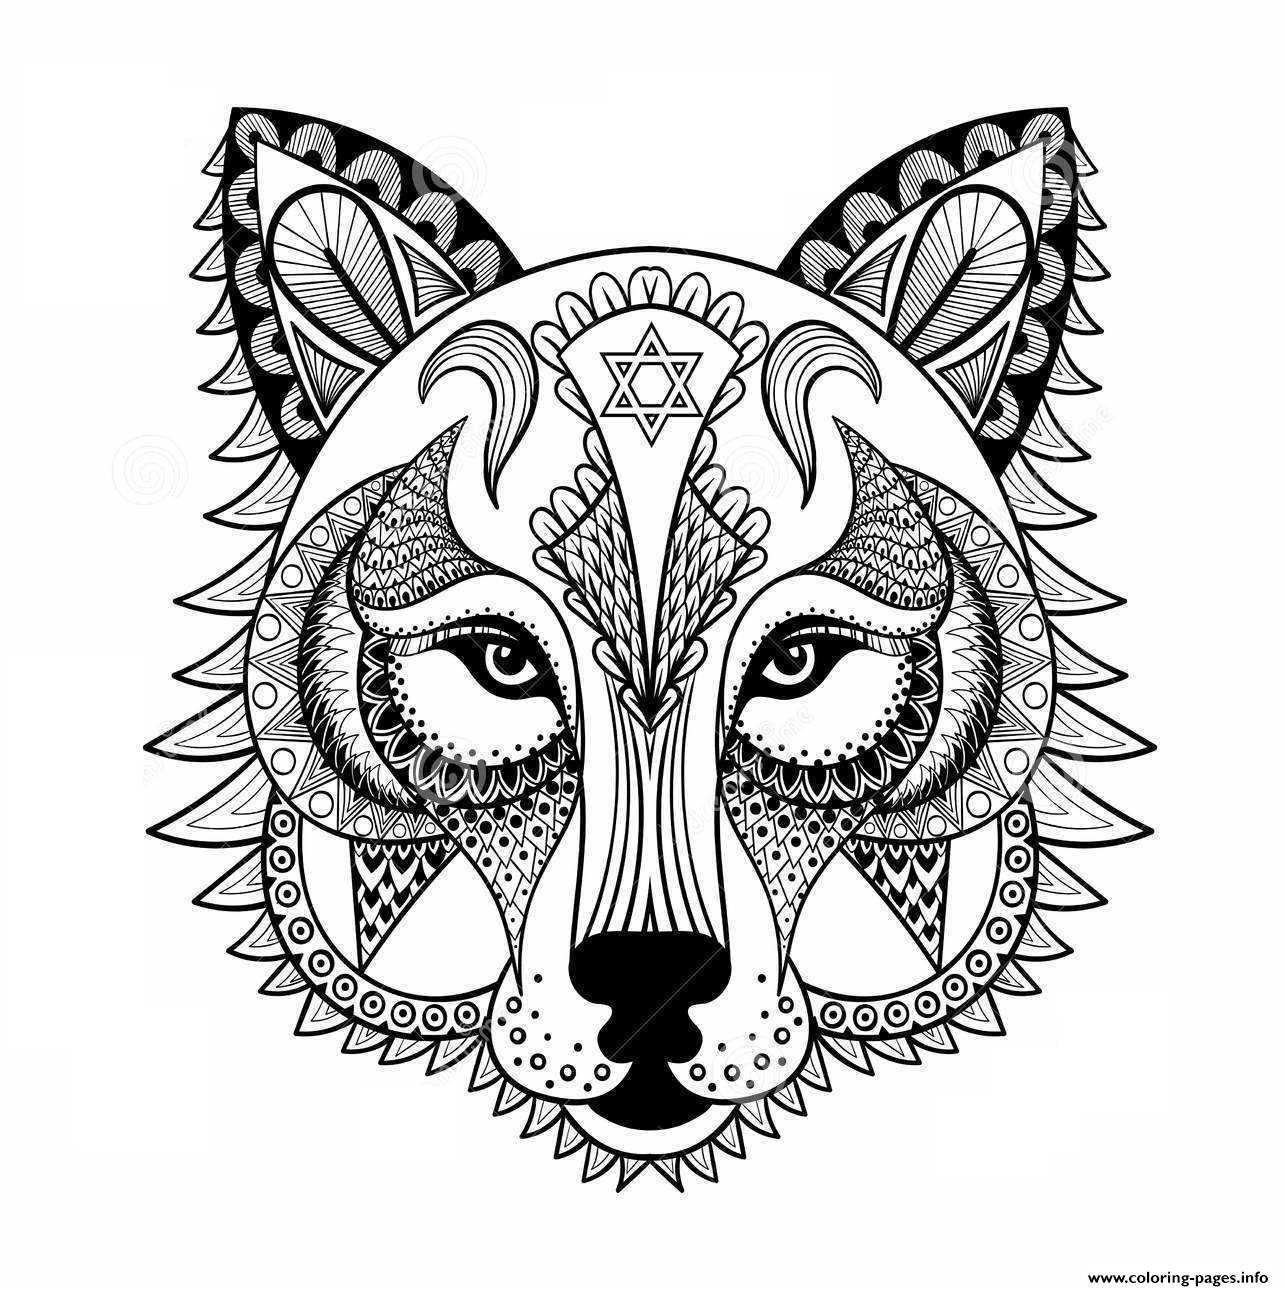 1284x1291 Wolf Coloring Pages For Adults Colouring In Humorous Print